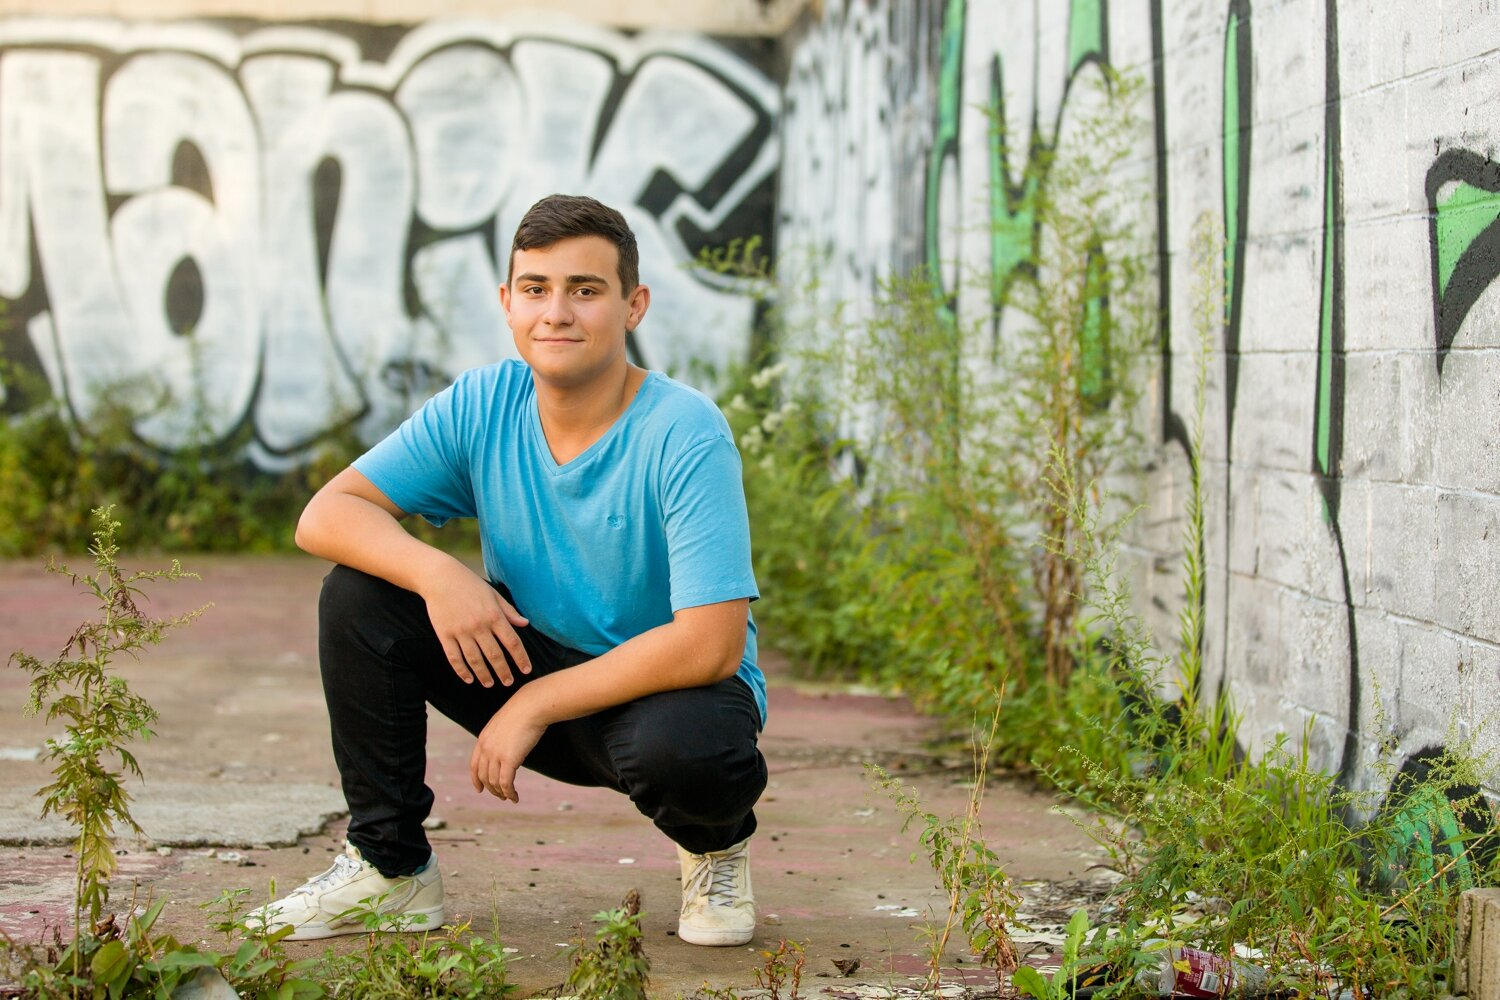 pittsburgh senior photographer, dowtown pittsburgh senior photos, strip district senior photos, locations in pittsburgh for senior photos